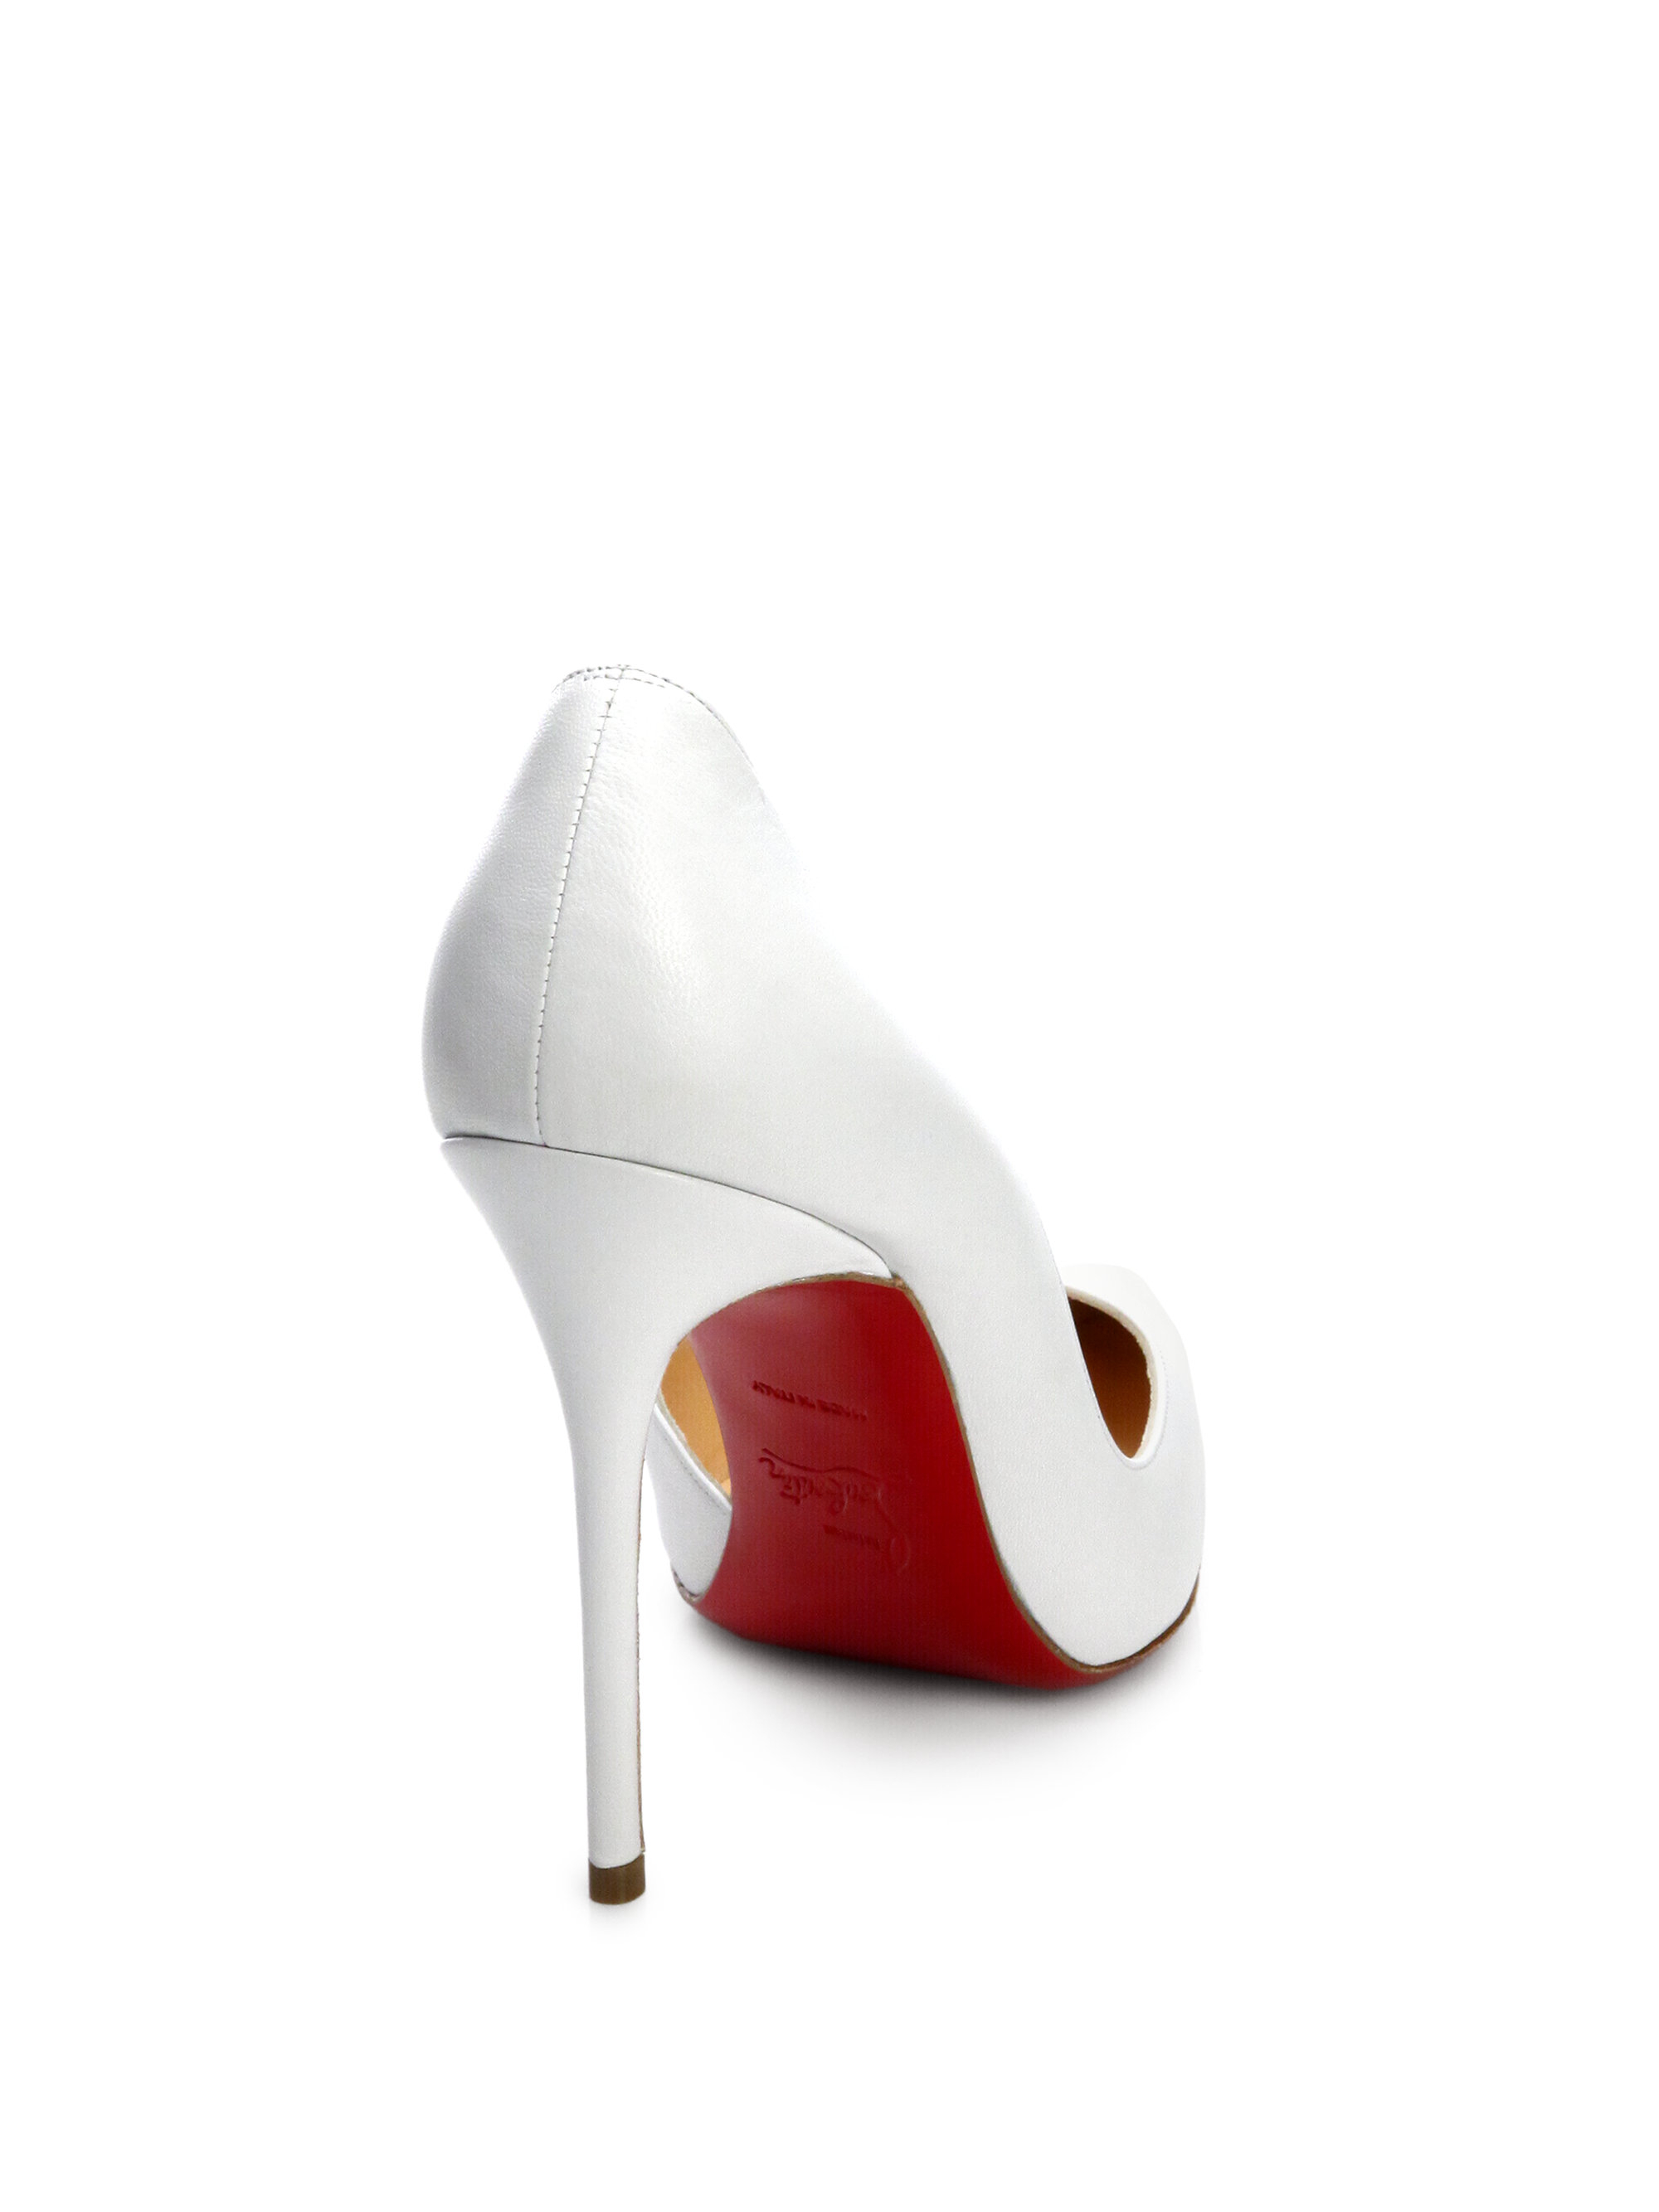 Christian louboutin Iriza Leather D\u0026#39;orsay Pumps in White | Lyst